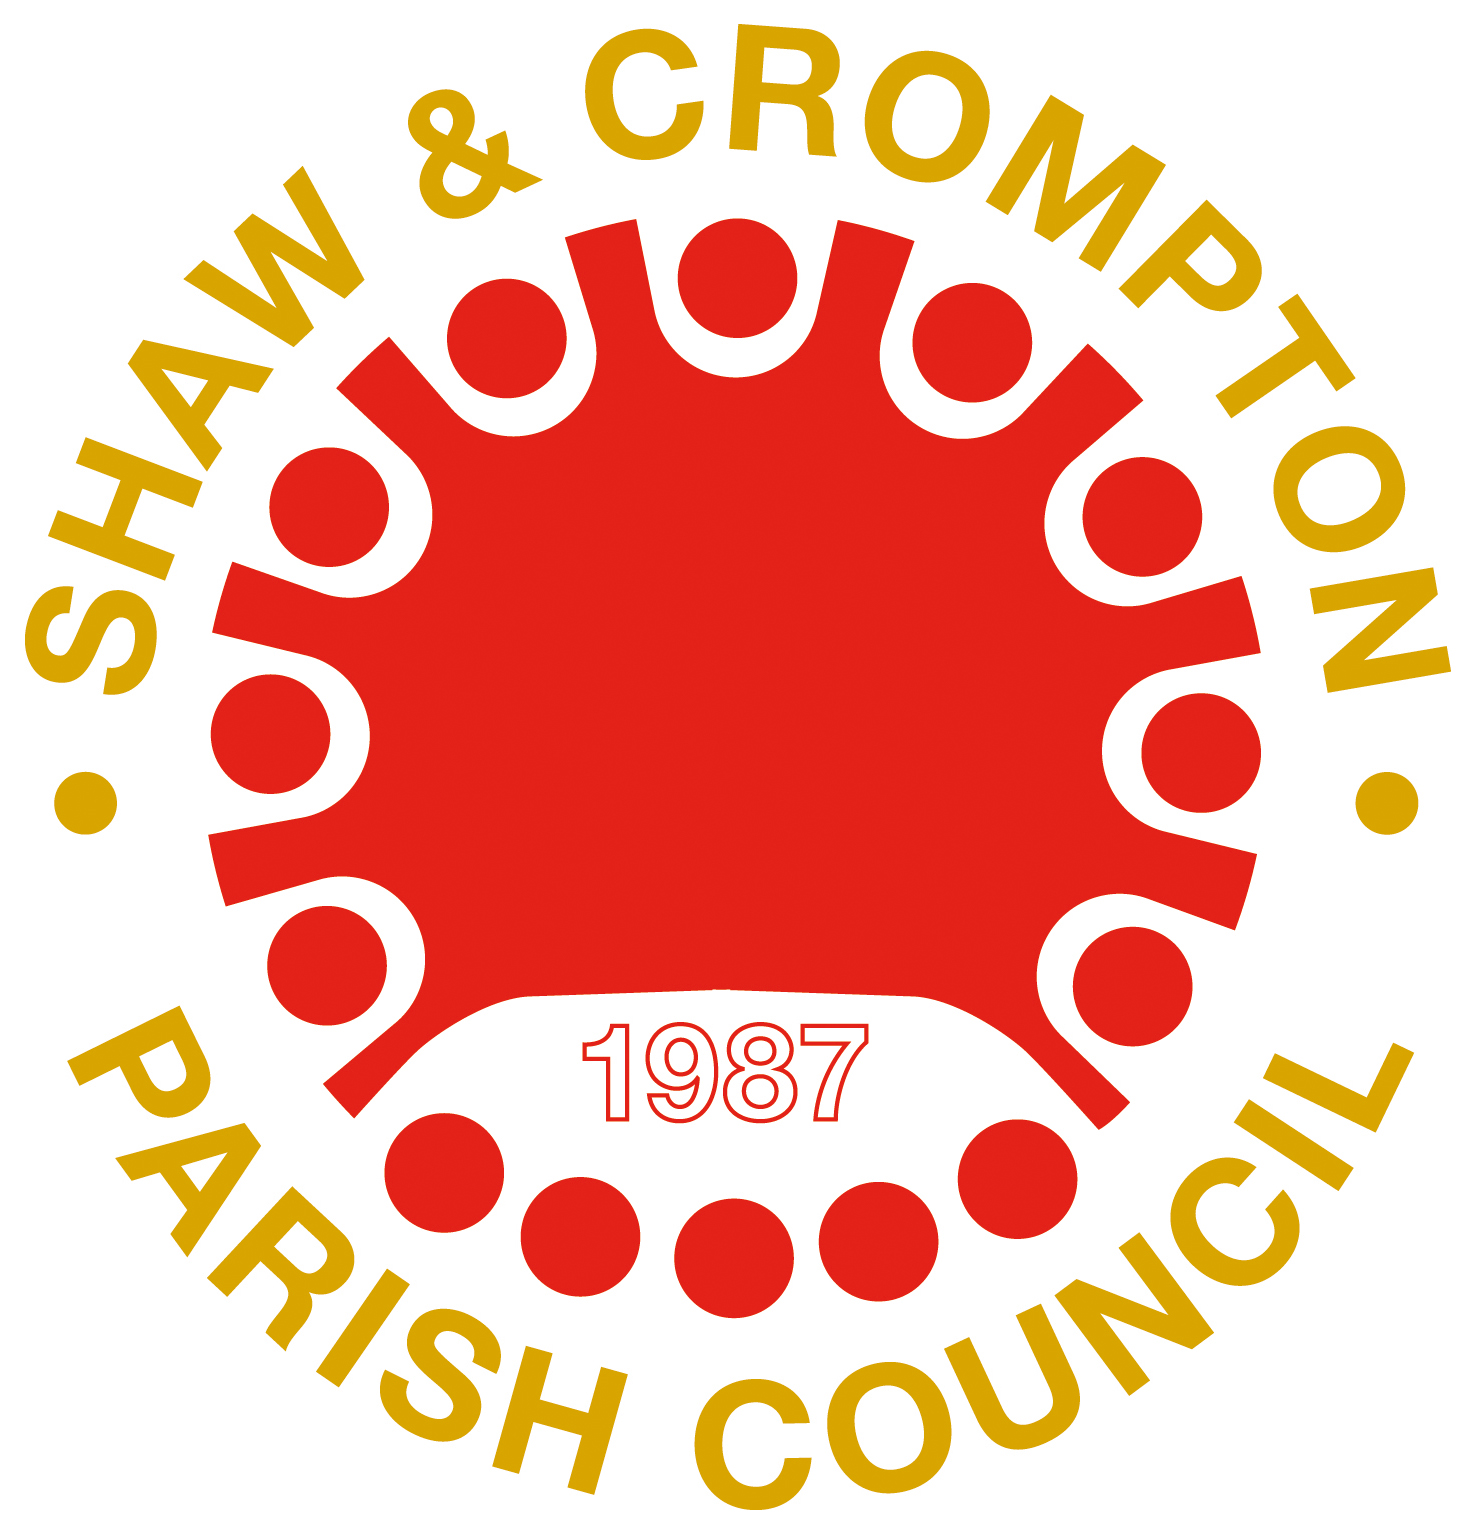 Shaw and Crompton logo colour